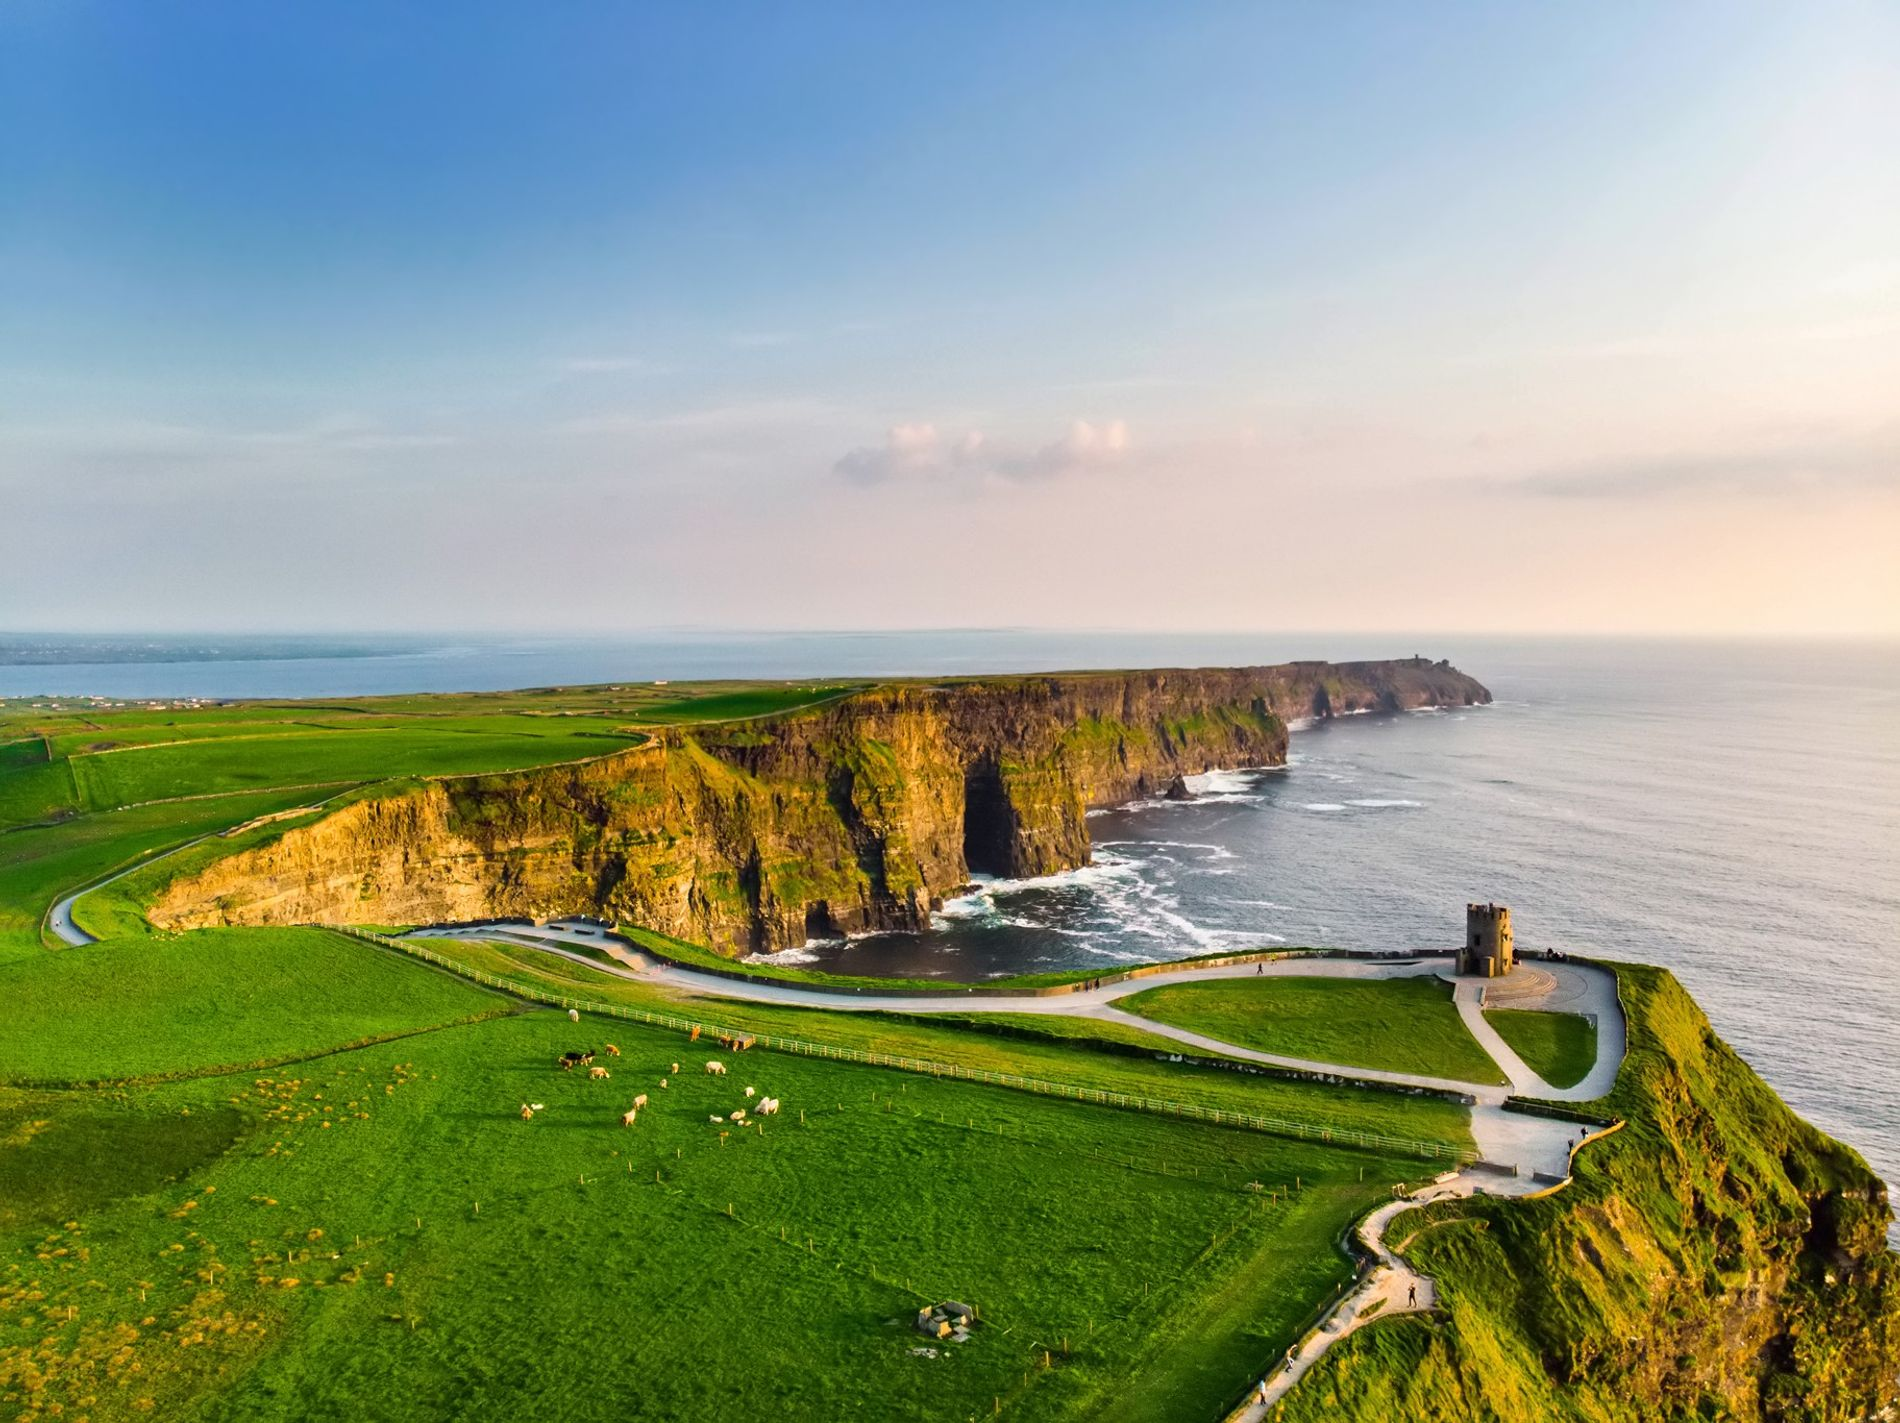 Paths edging the Cliffs of Moher provide some of Ireland's most spectacular views.